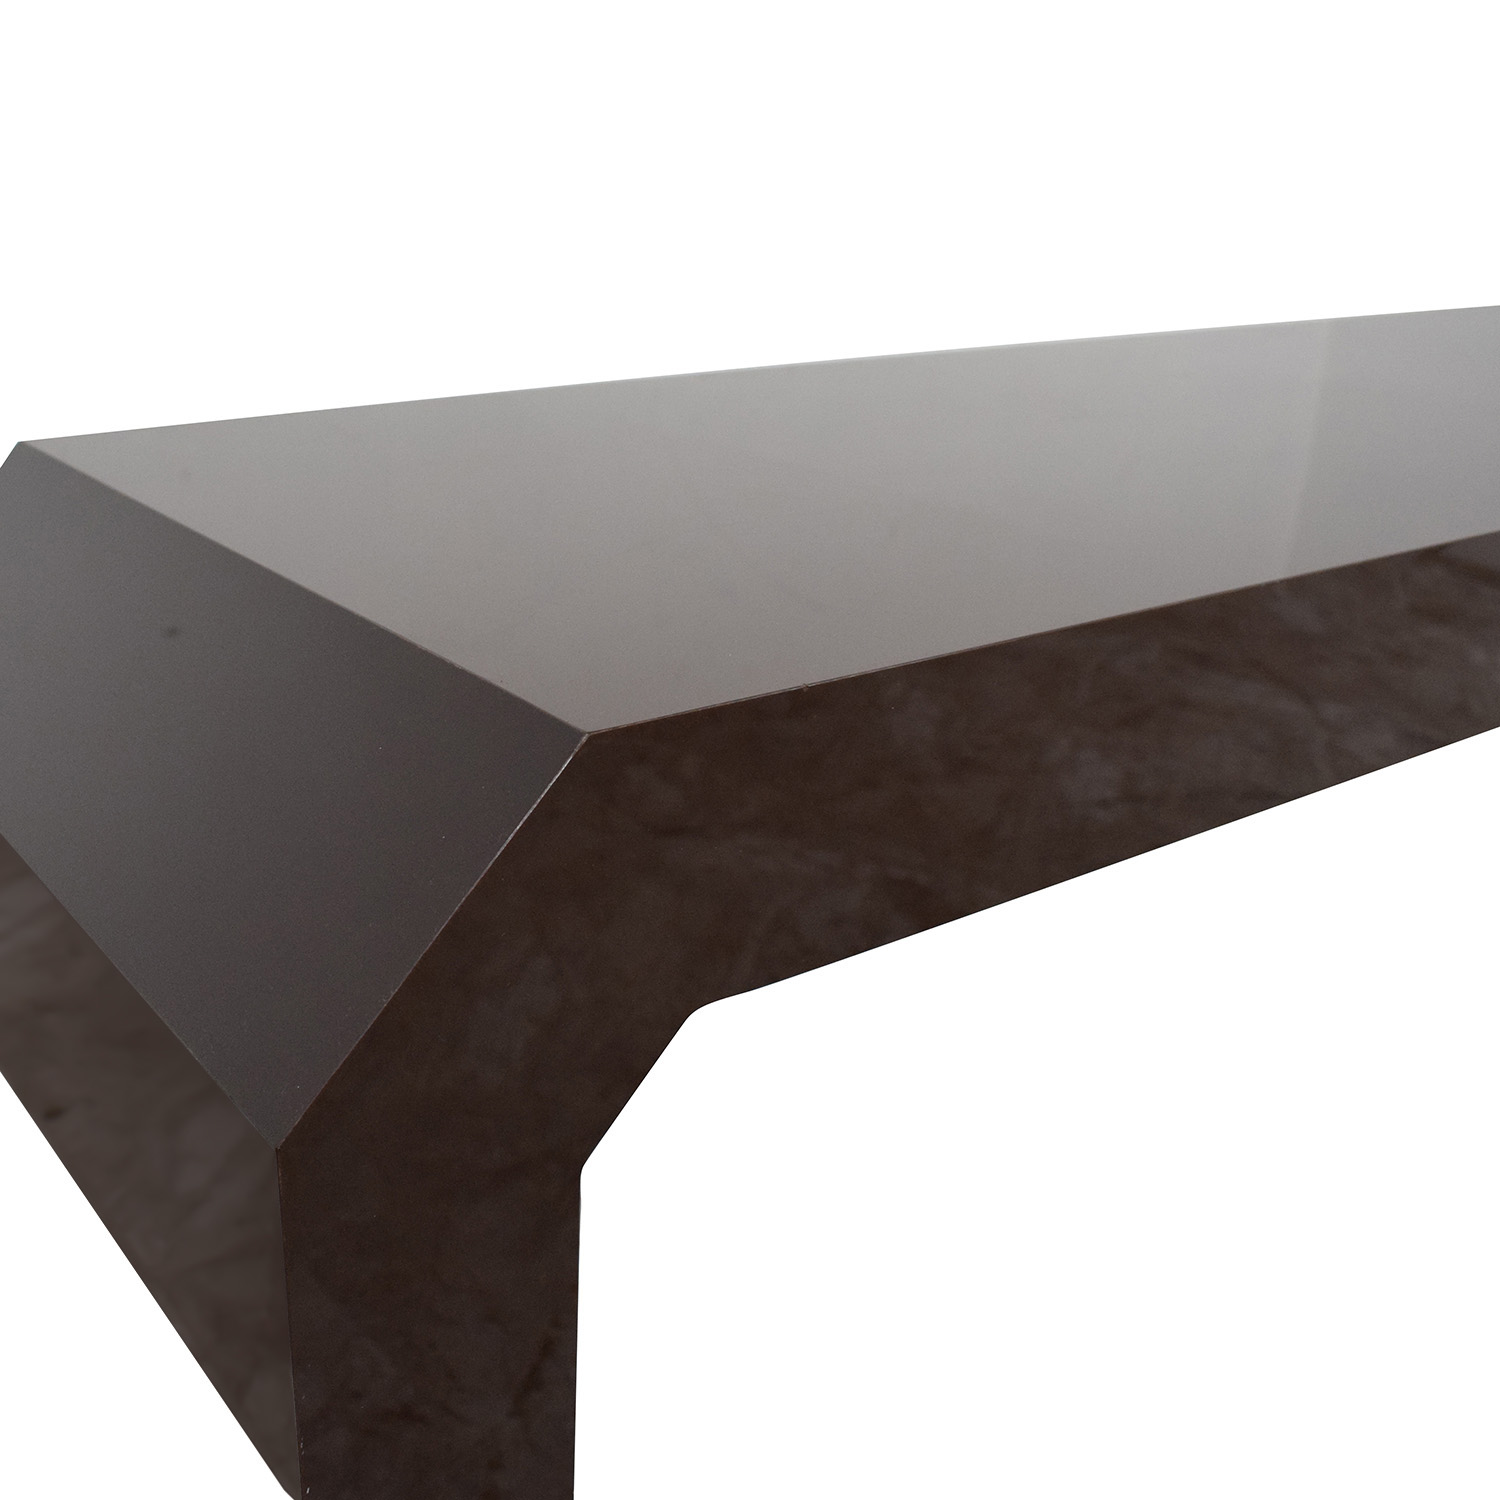 Lacquer Angle Accent Table dimensions